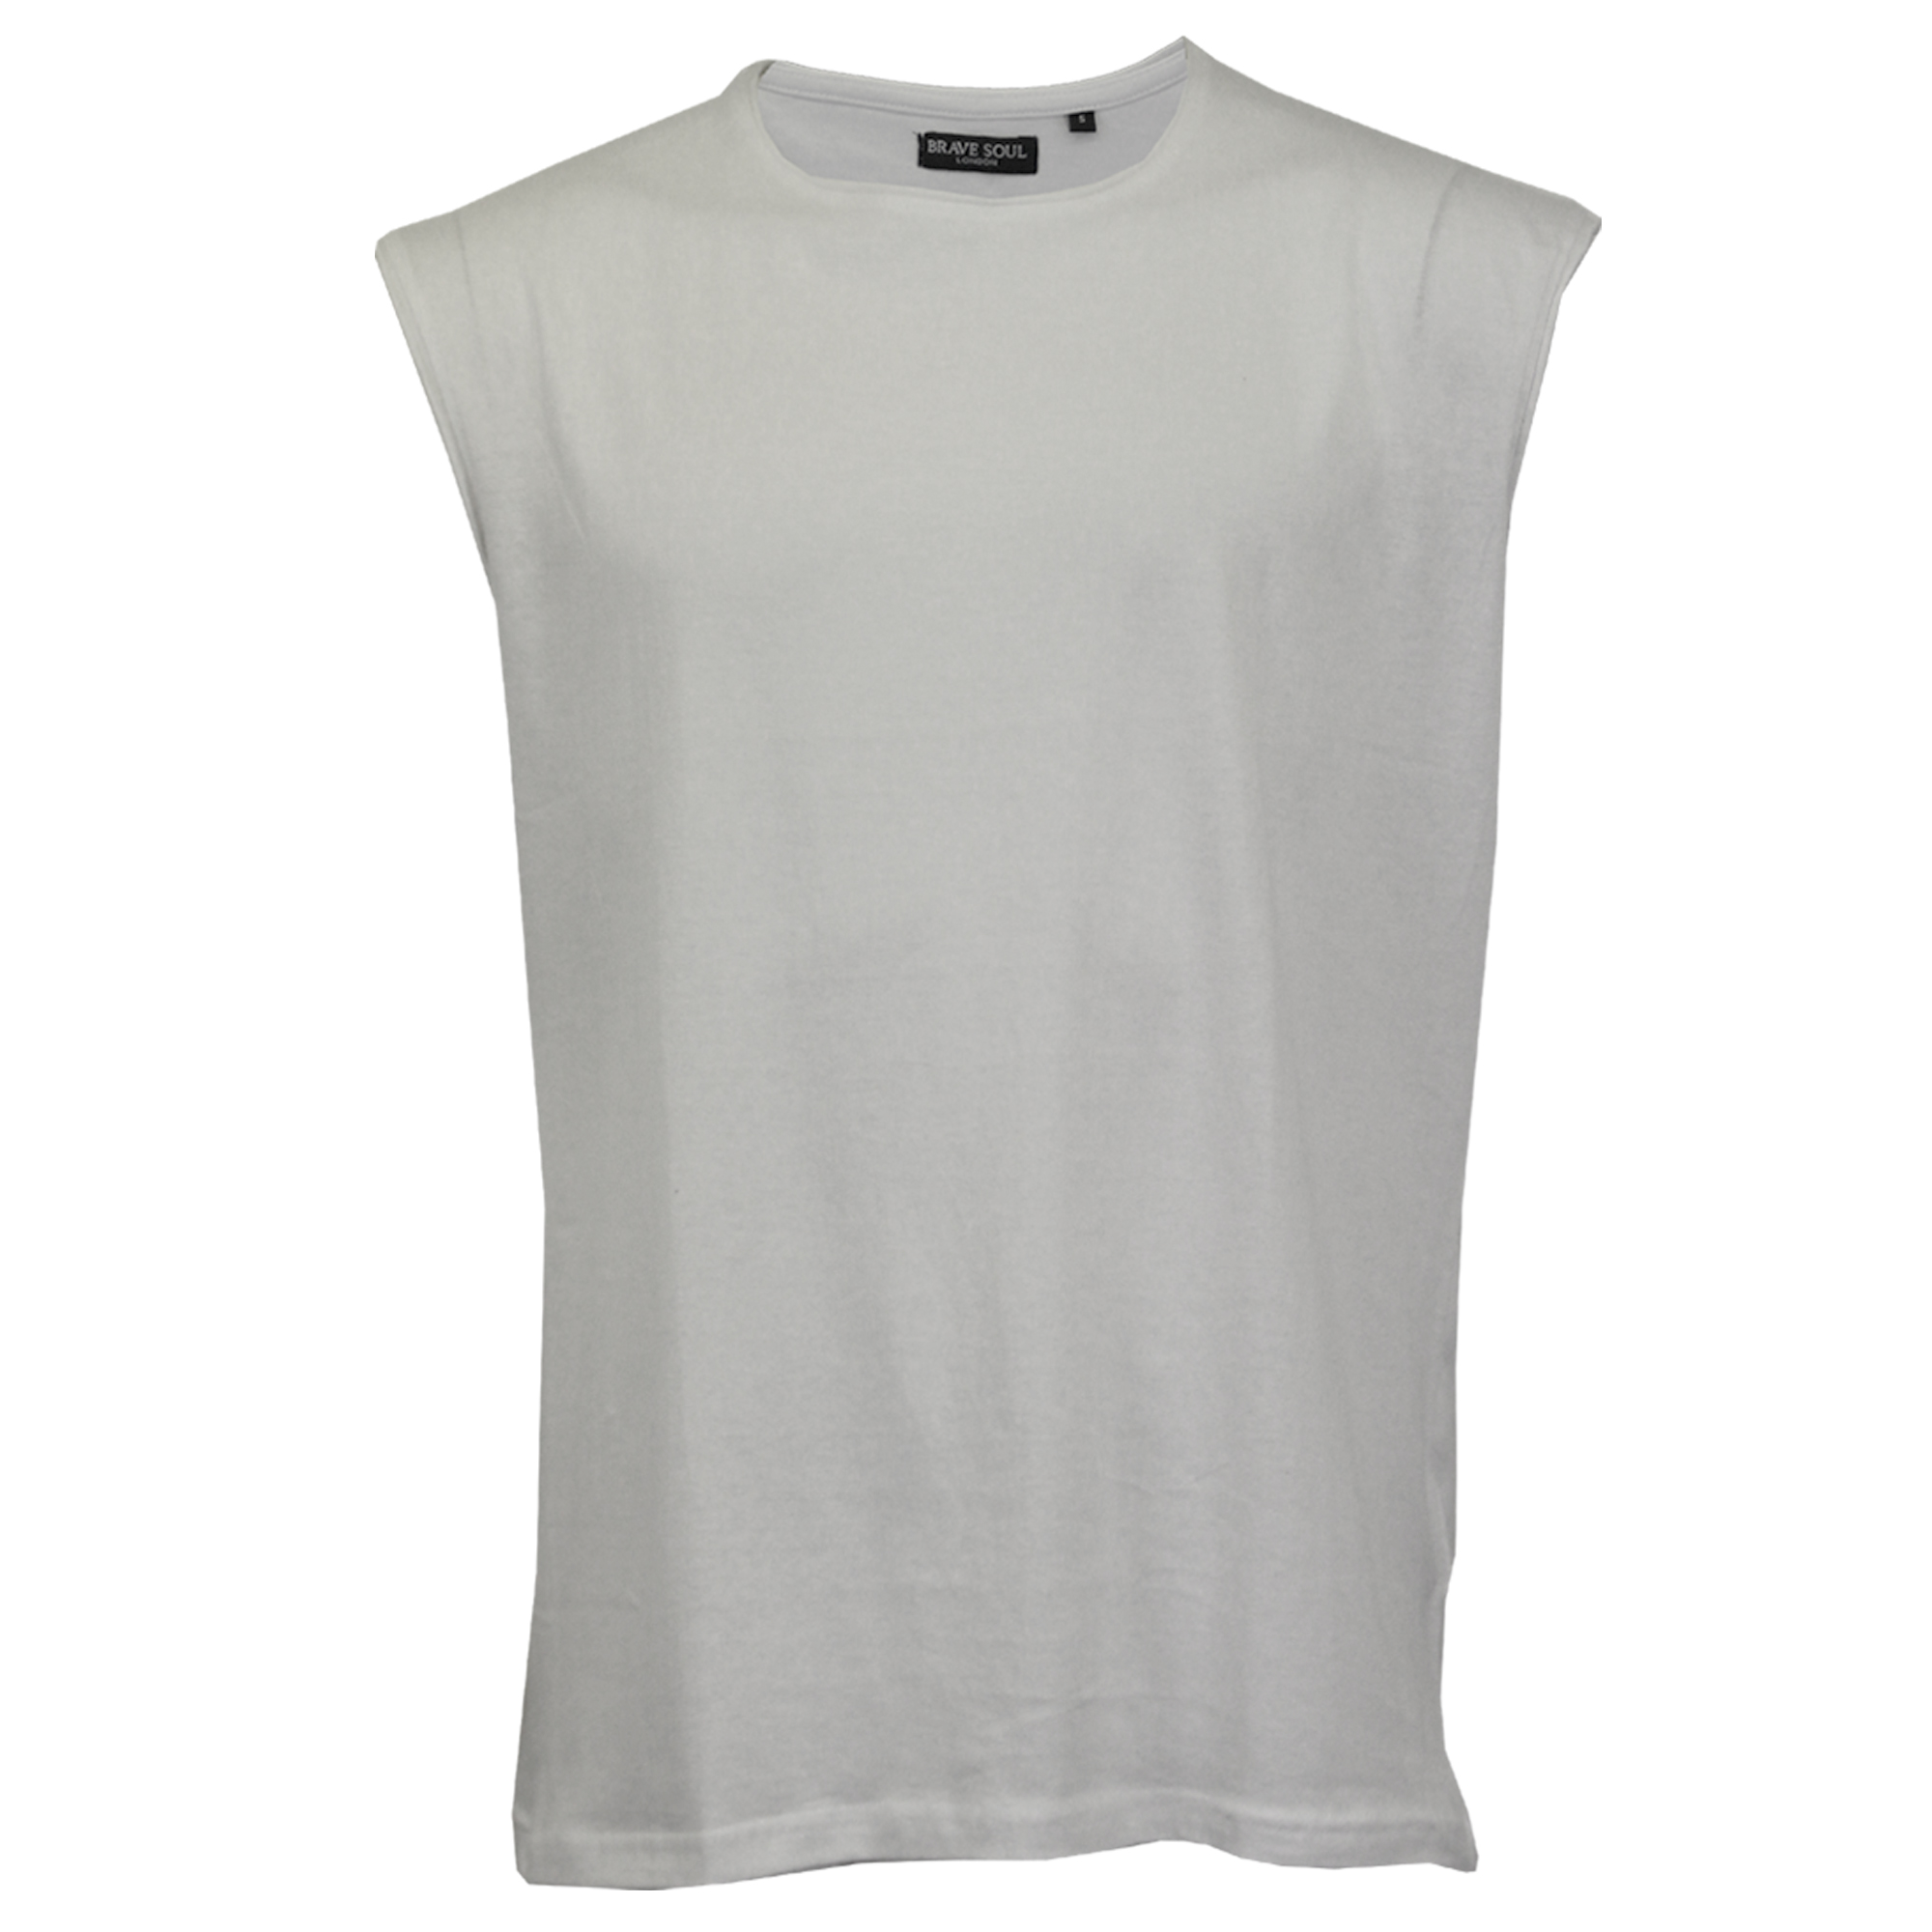 Mens-Vest-Brave-Soul-Tank-Top-Varley-Gym-Training-Crew-Neck-Casual-Summer-New thumbnail 14